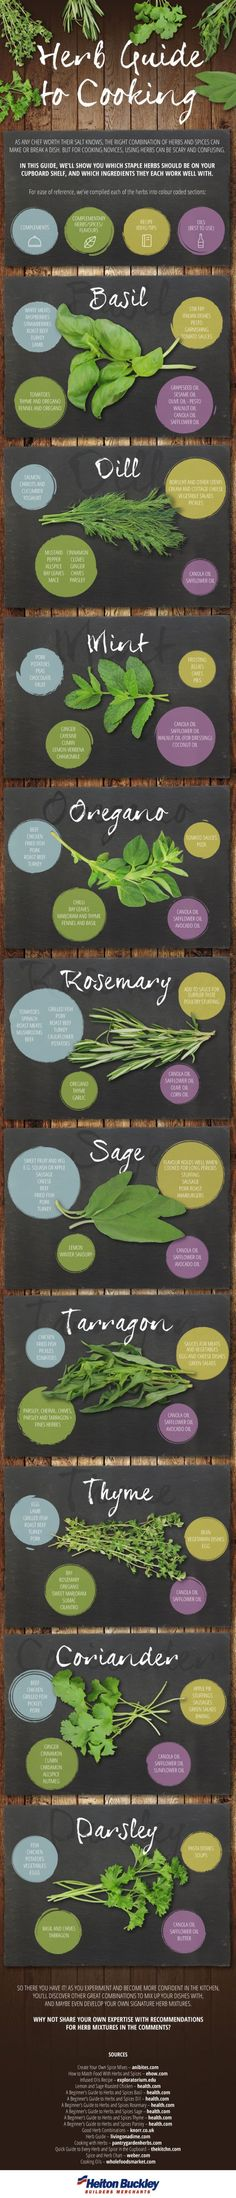 Keep this guide handy to know which herbs to use for each of your dishes